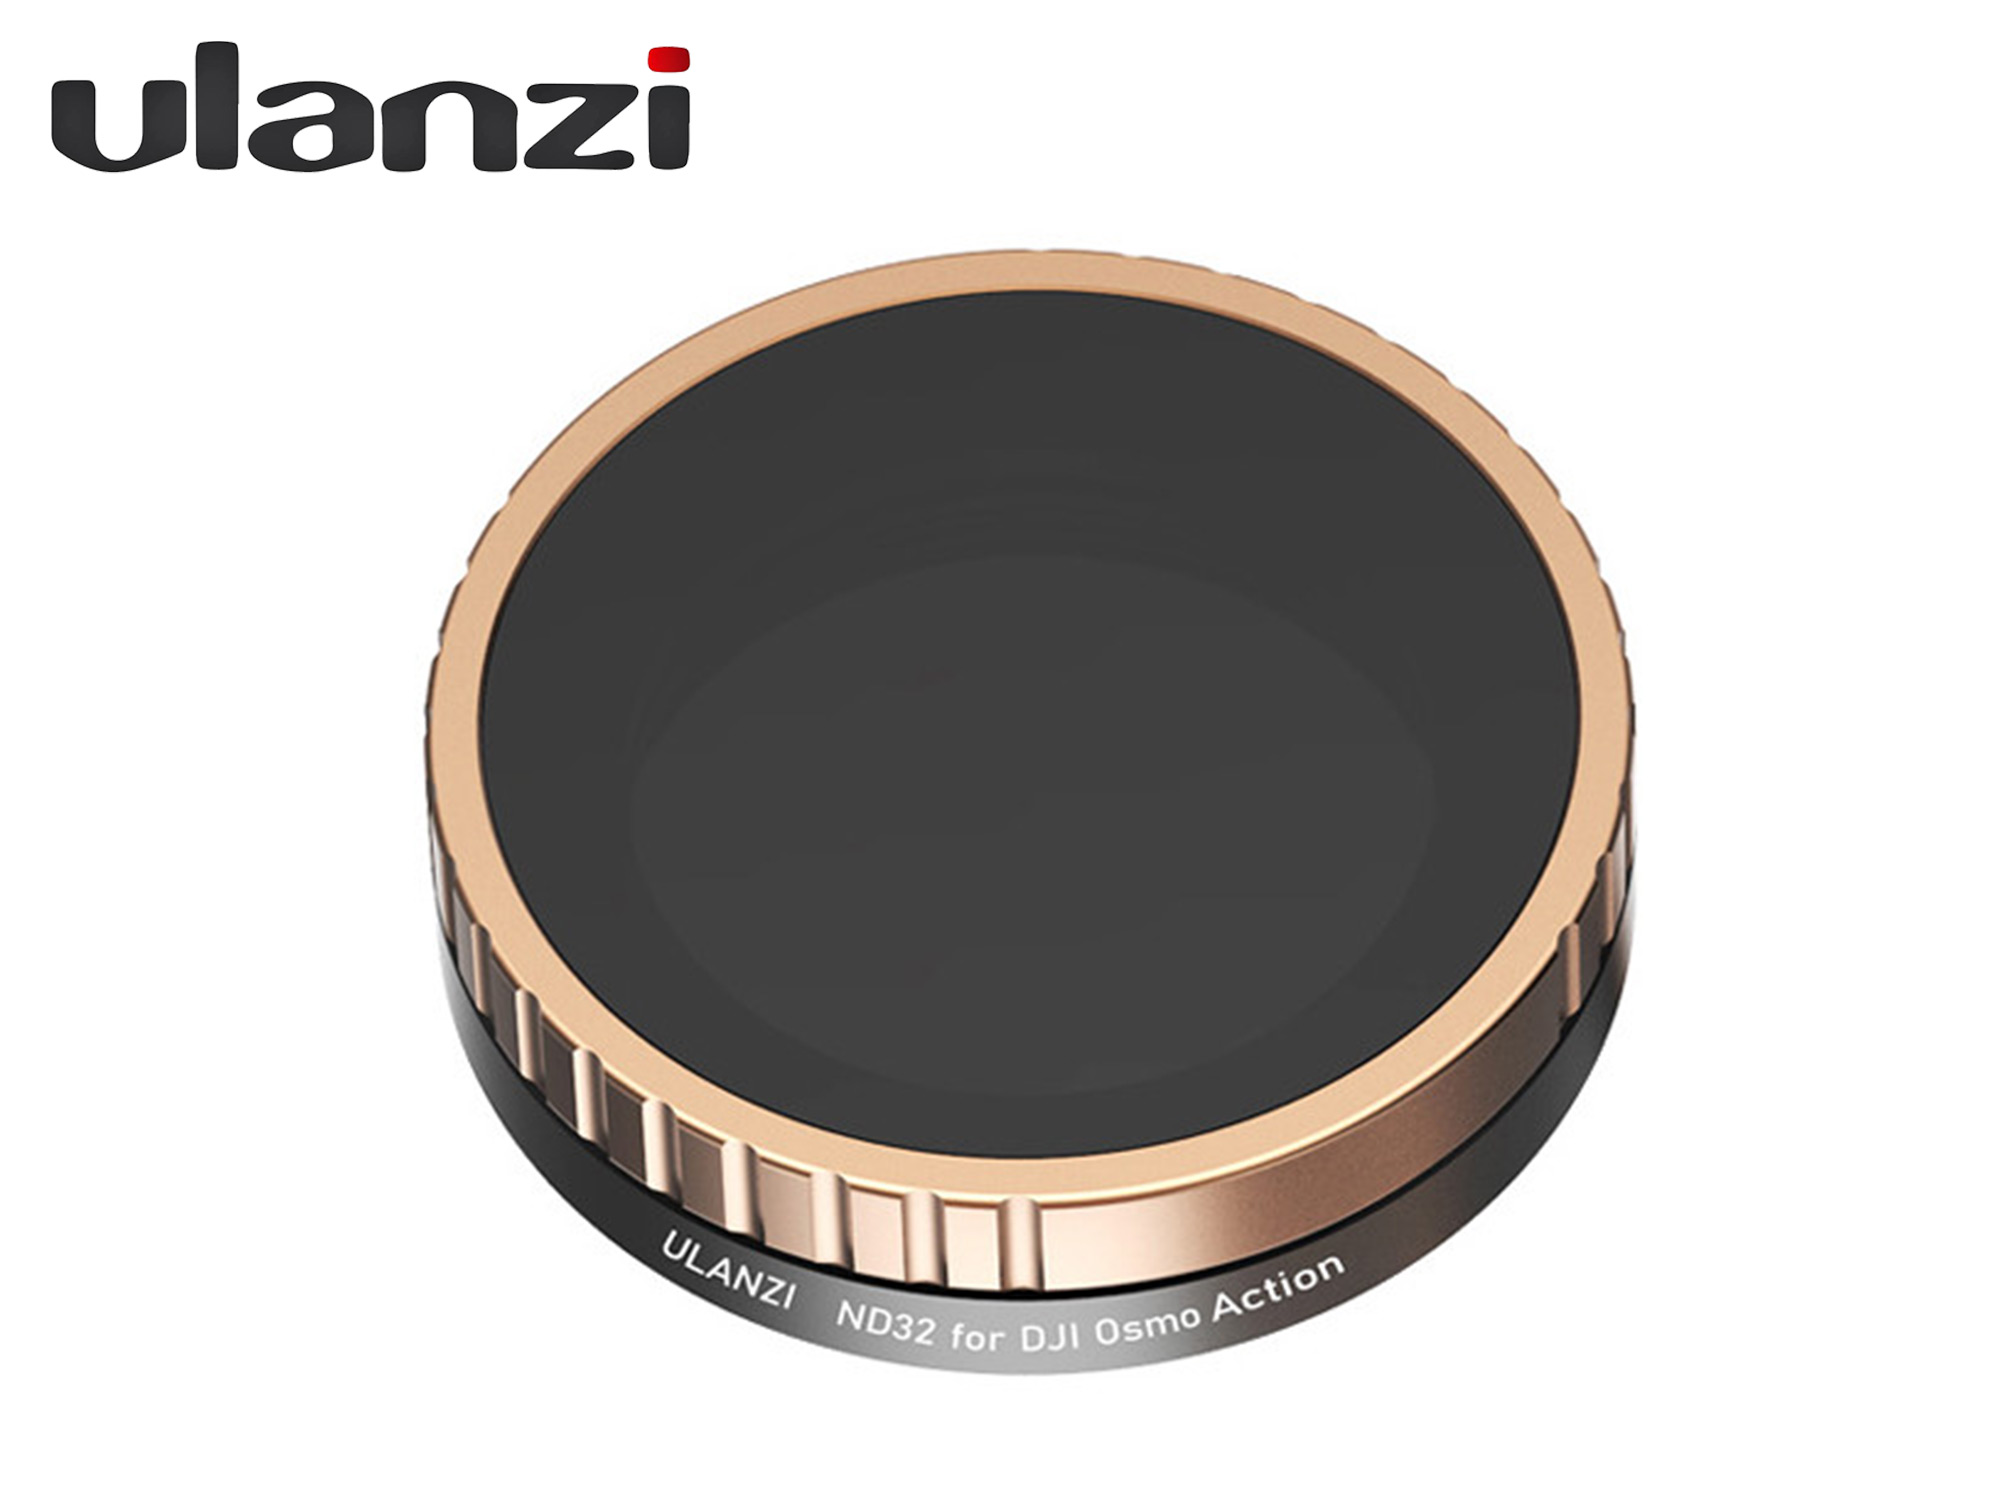 Ulanzi ND Filter for Osmo Action - ND32